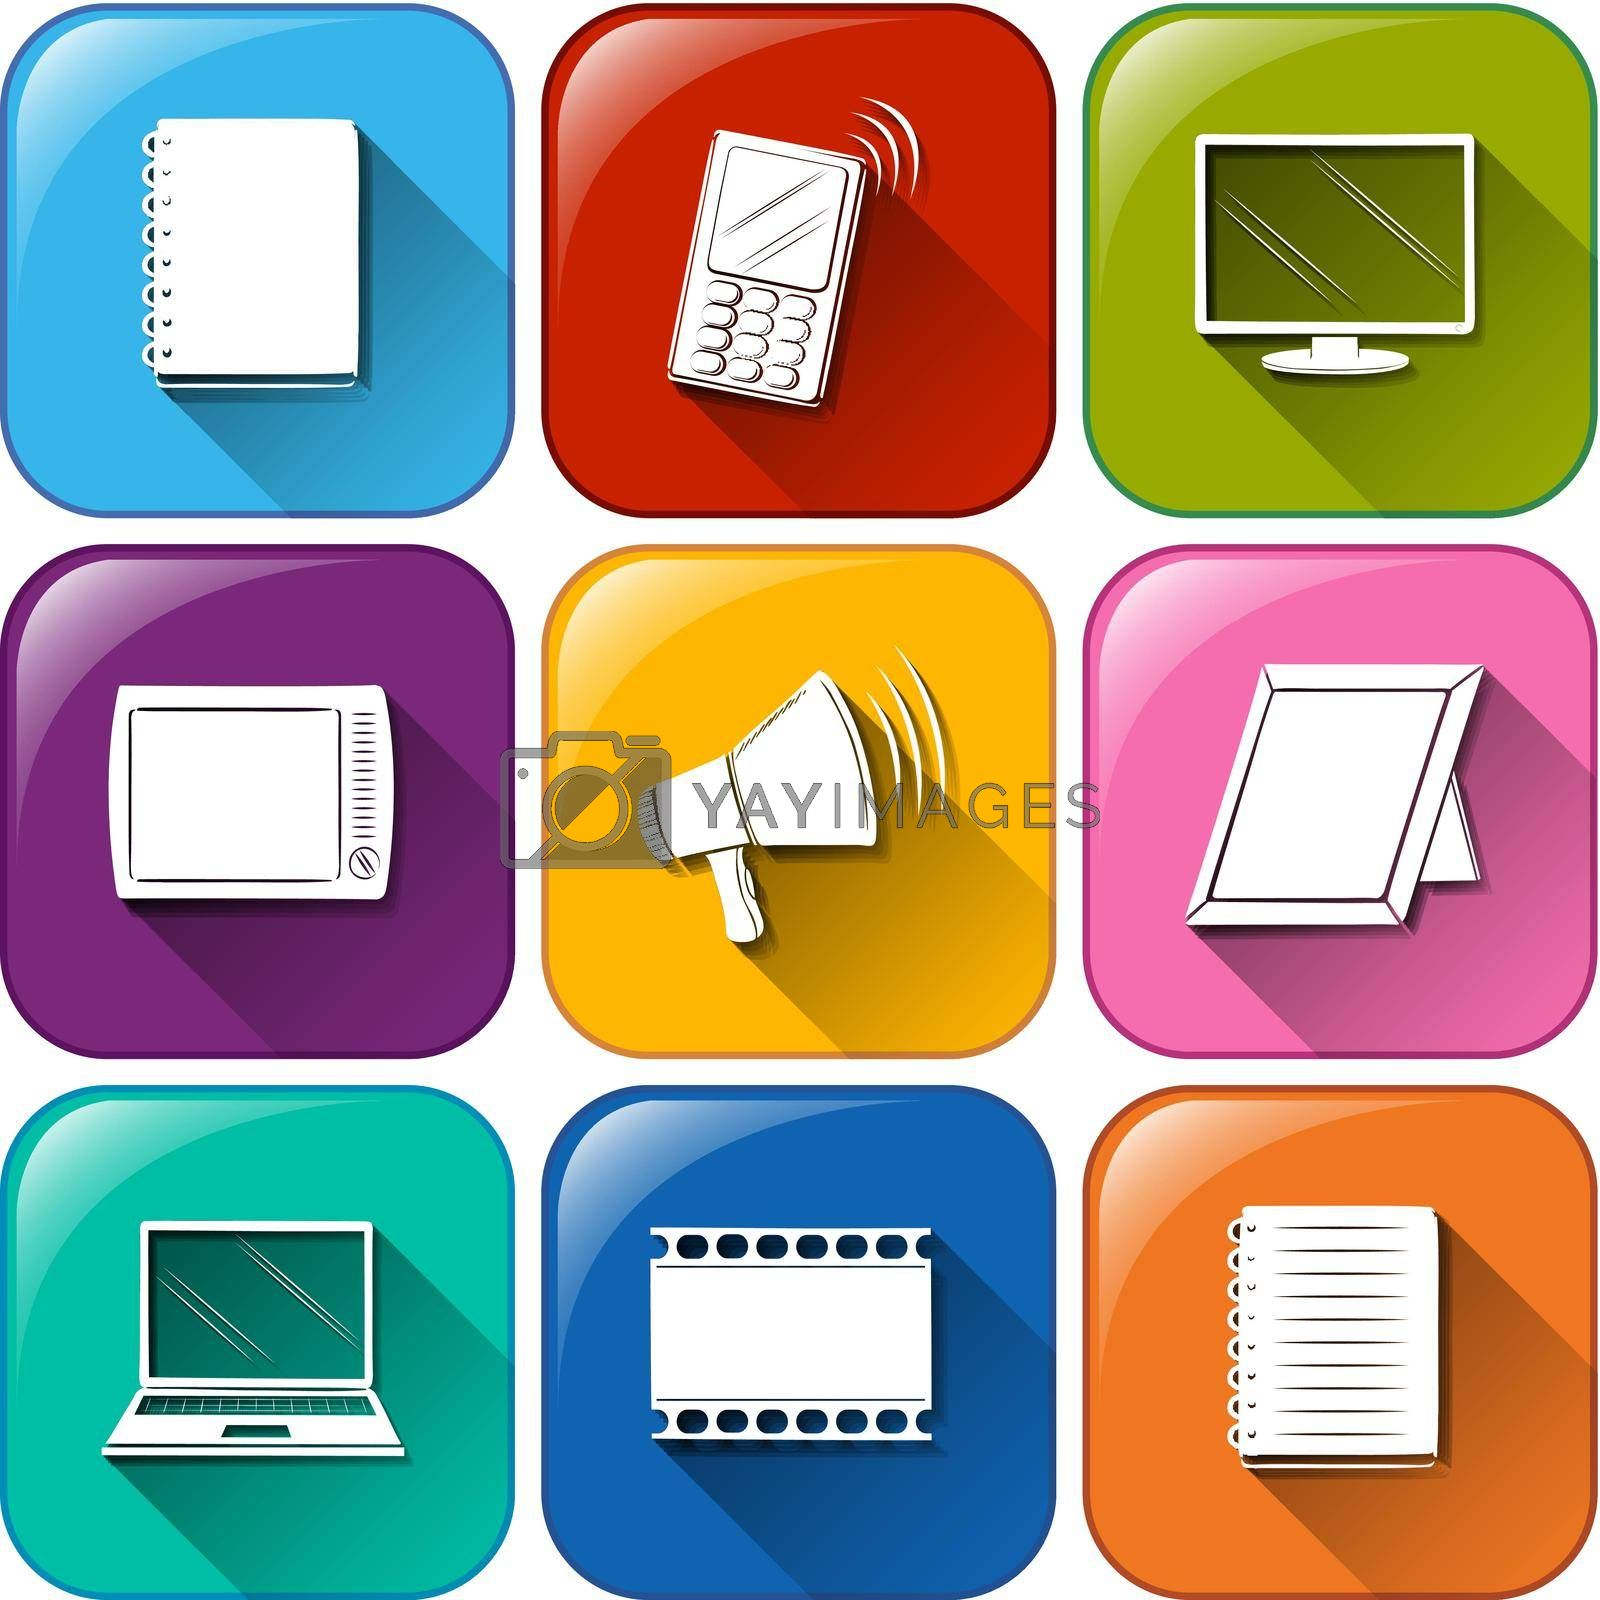 Illustration of the buttons with the different communication tools on a white background